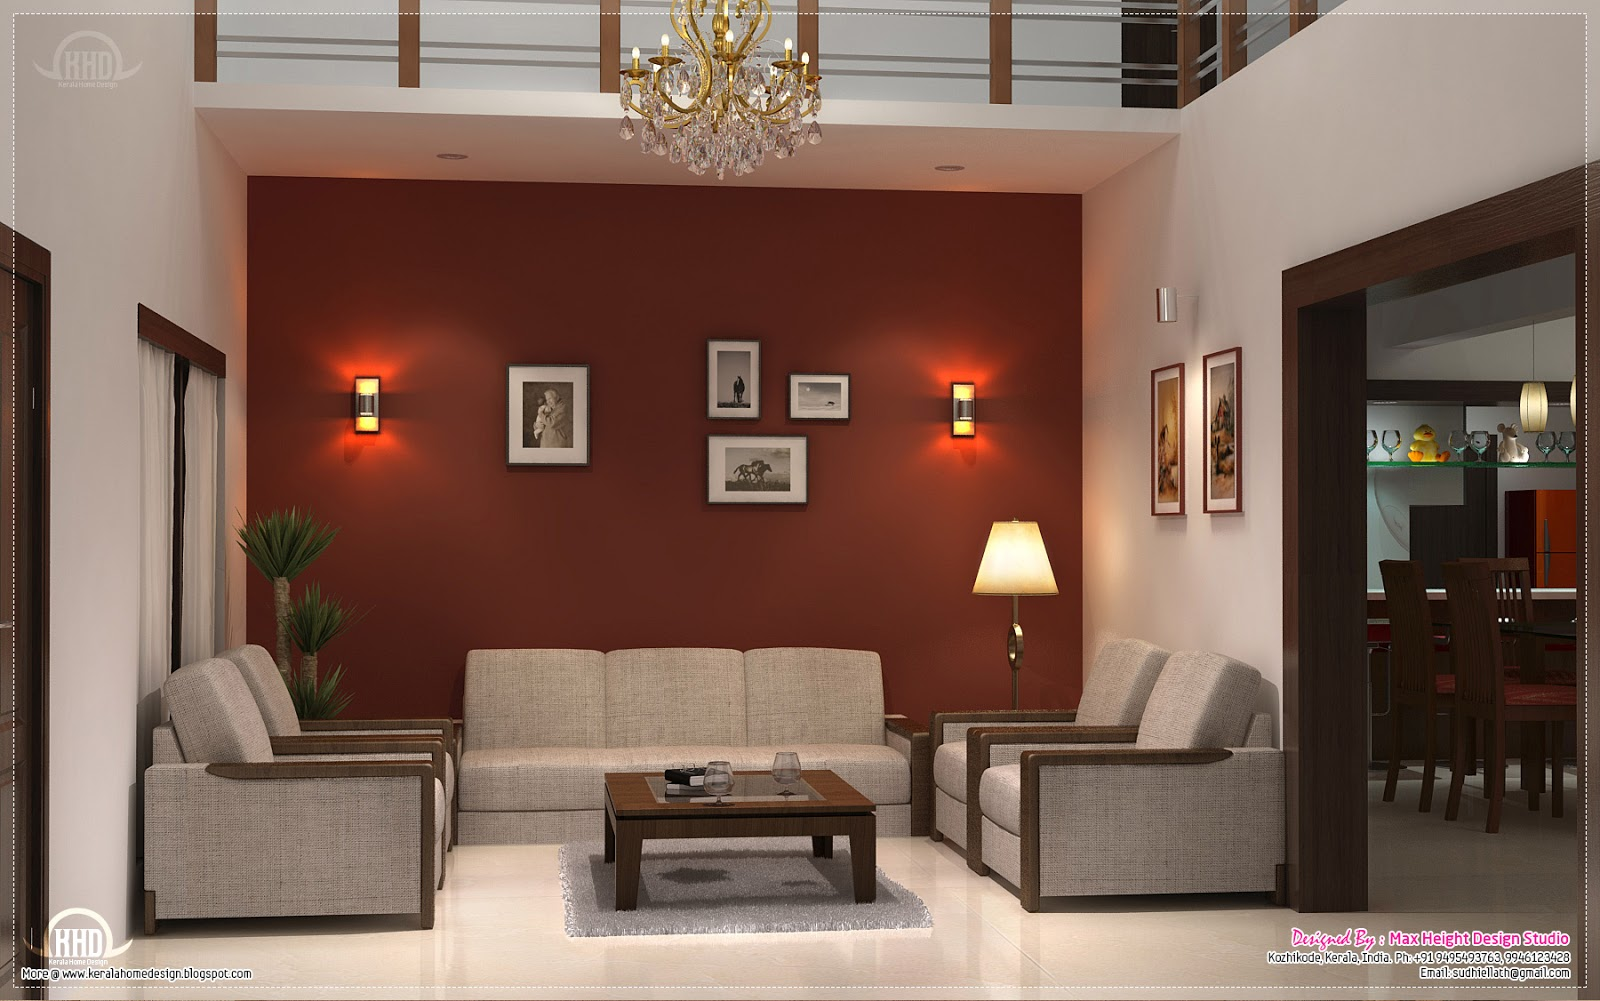 Home interior design ideas home kerala plans for Latest home decor ideas